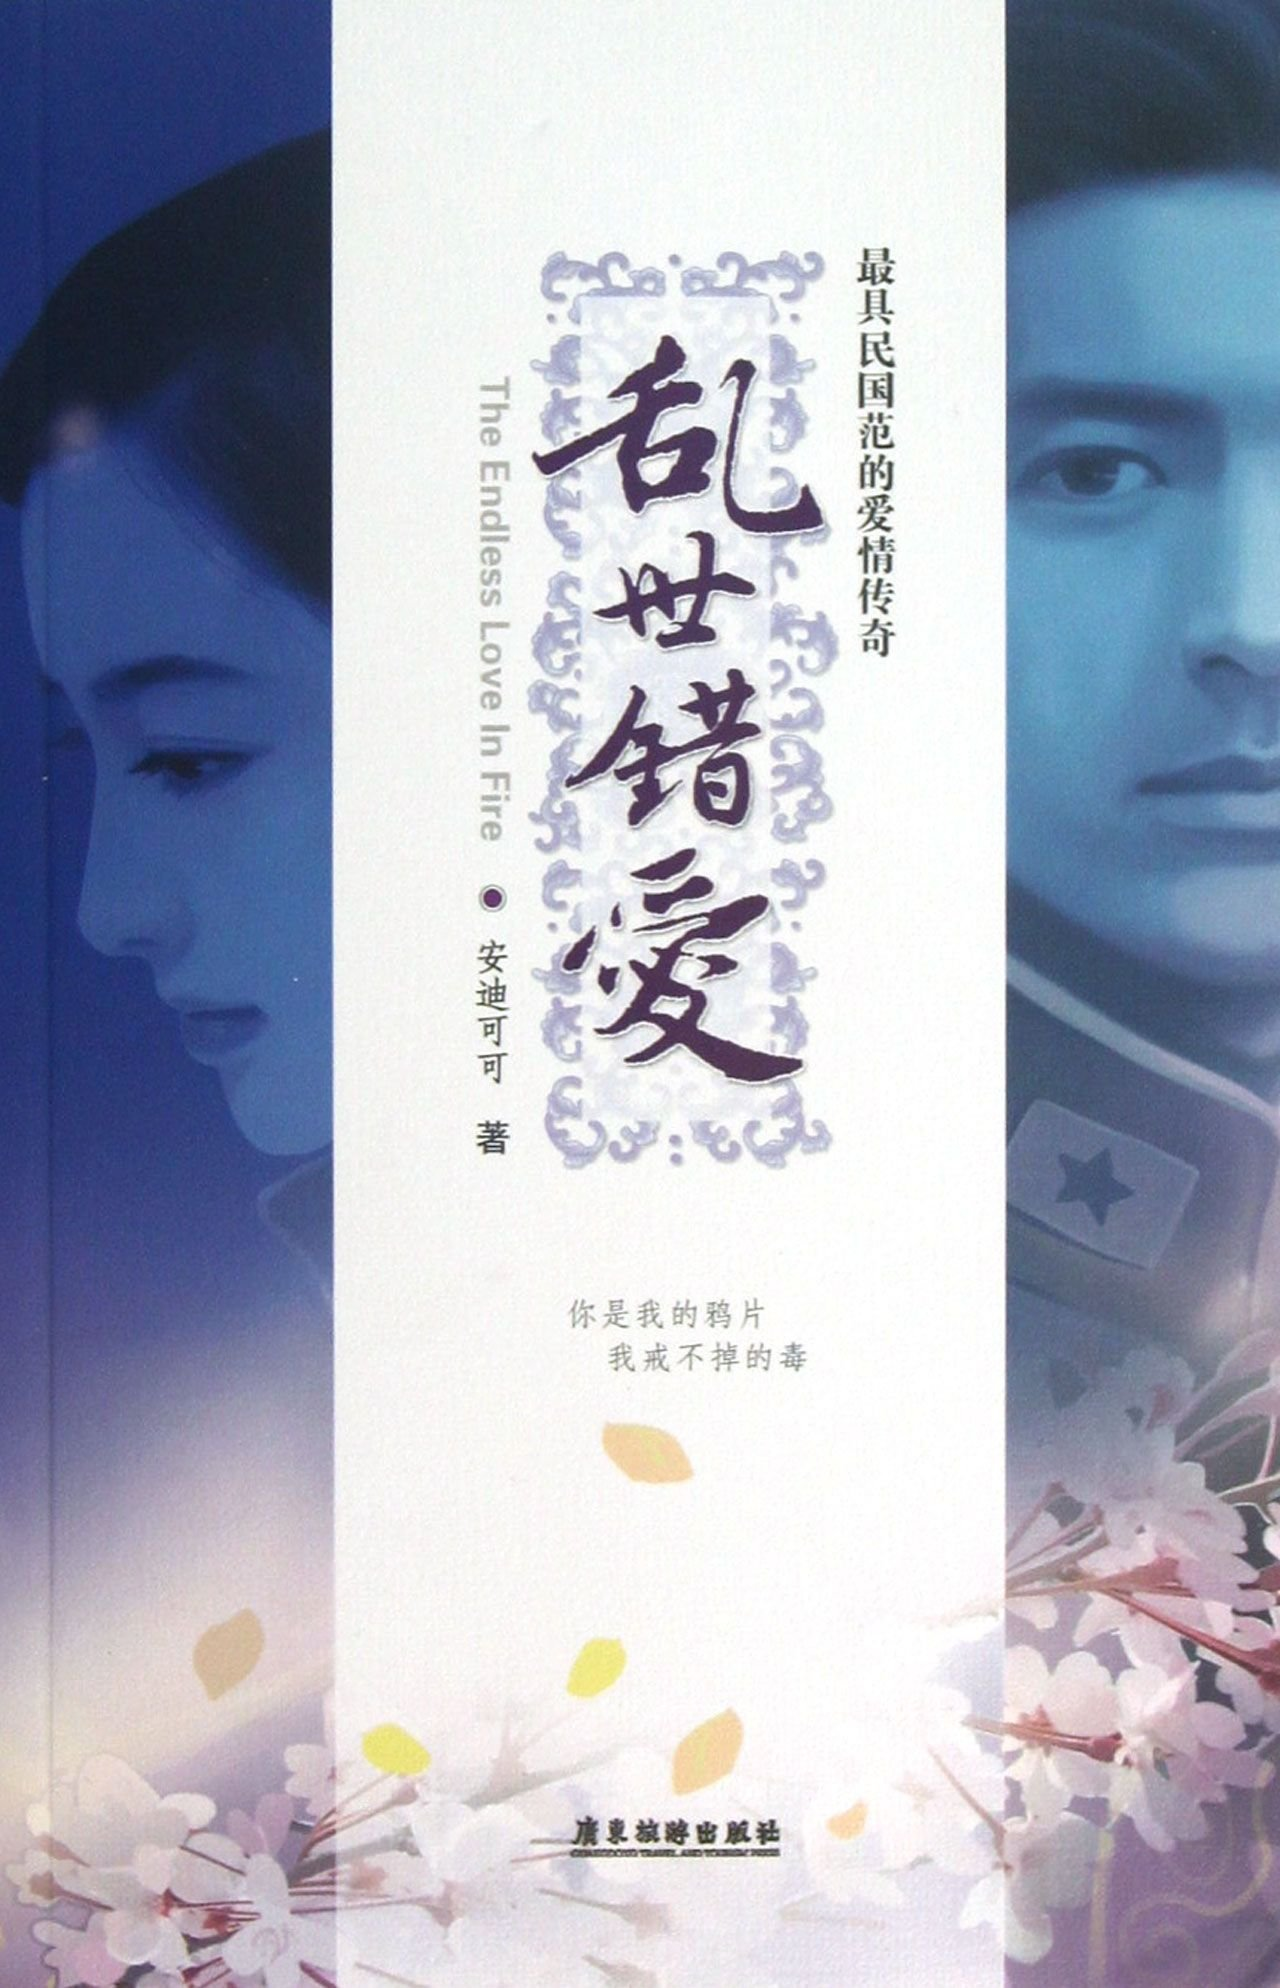 Read Online Misplaced Love in Troubled Times (Chinese Edition) PDF ePub book